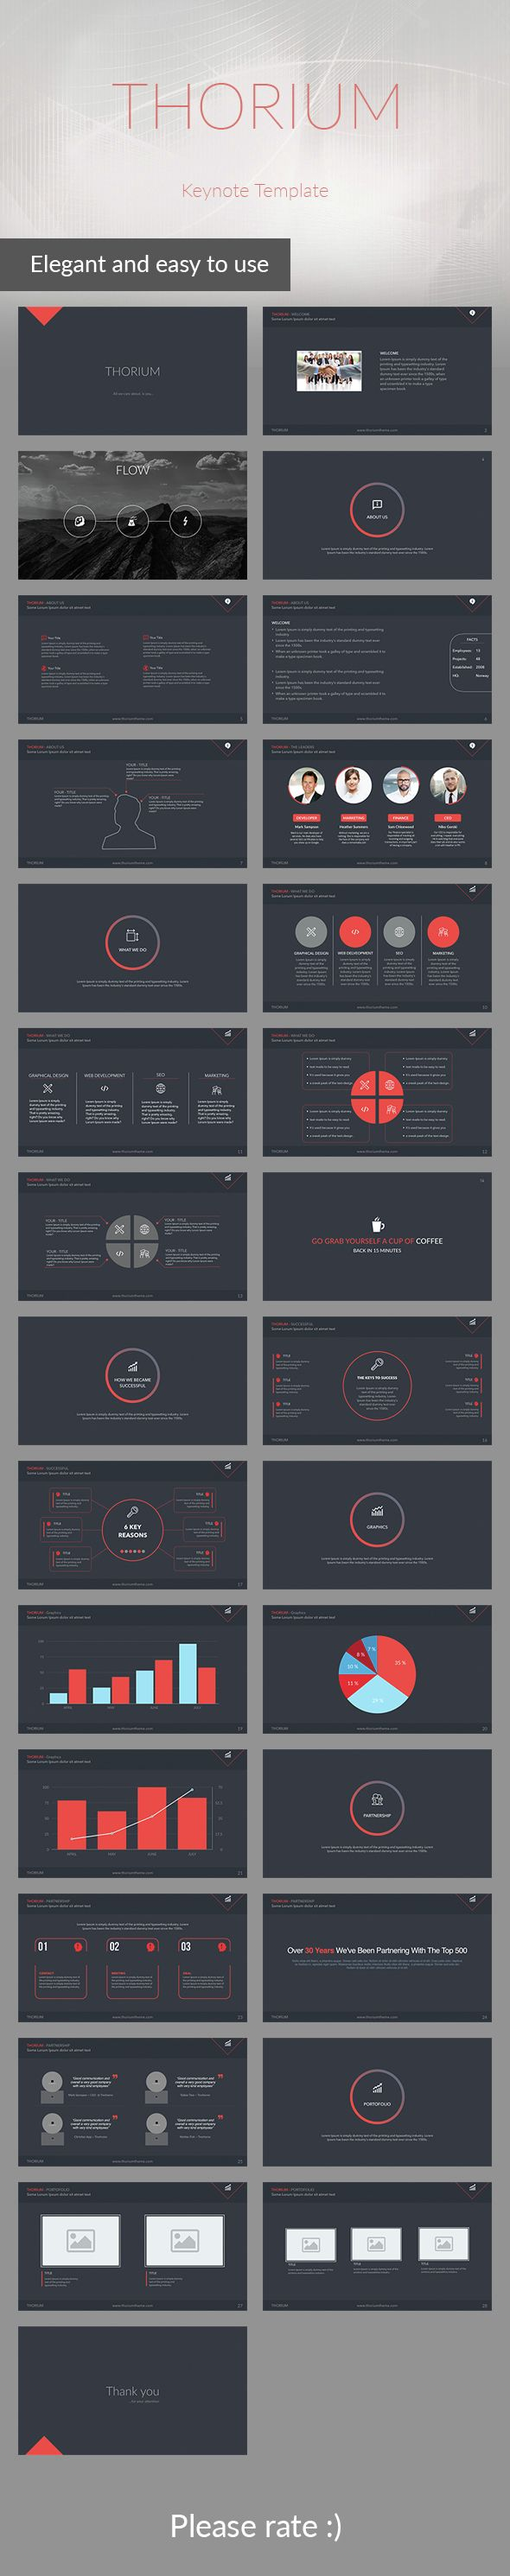 Thorium - Keynote Presentation Template - Business Keynote Templates